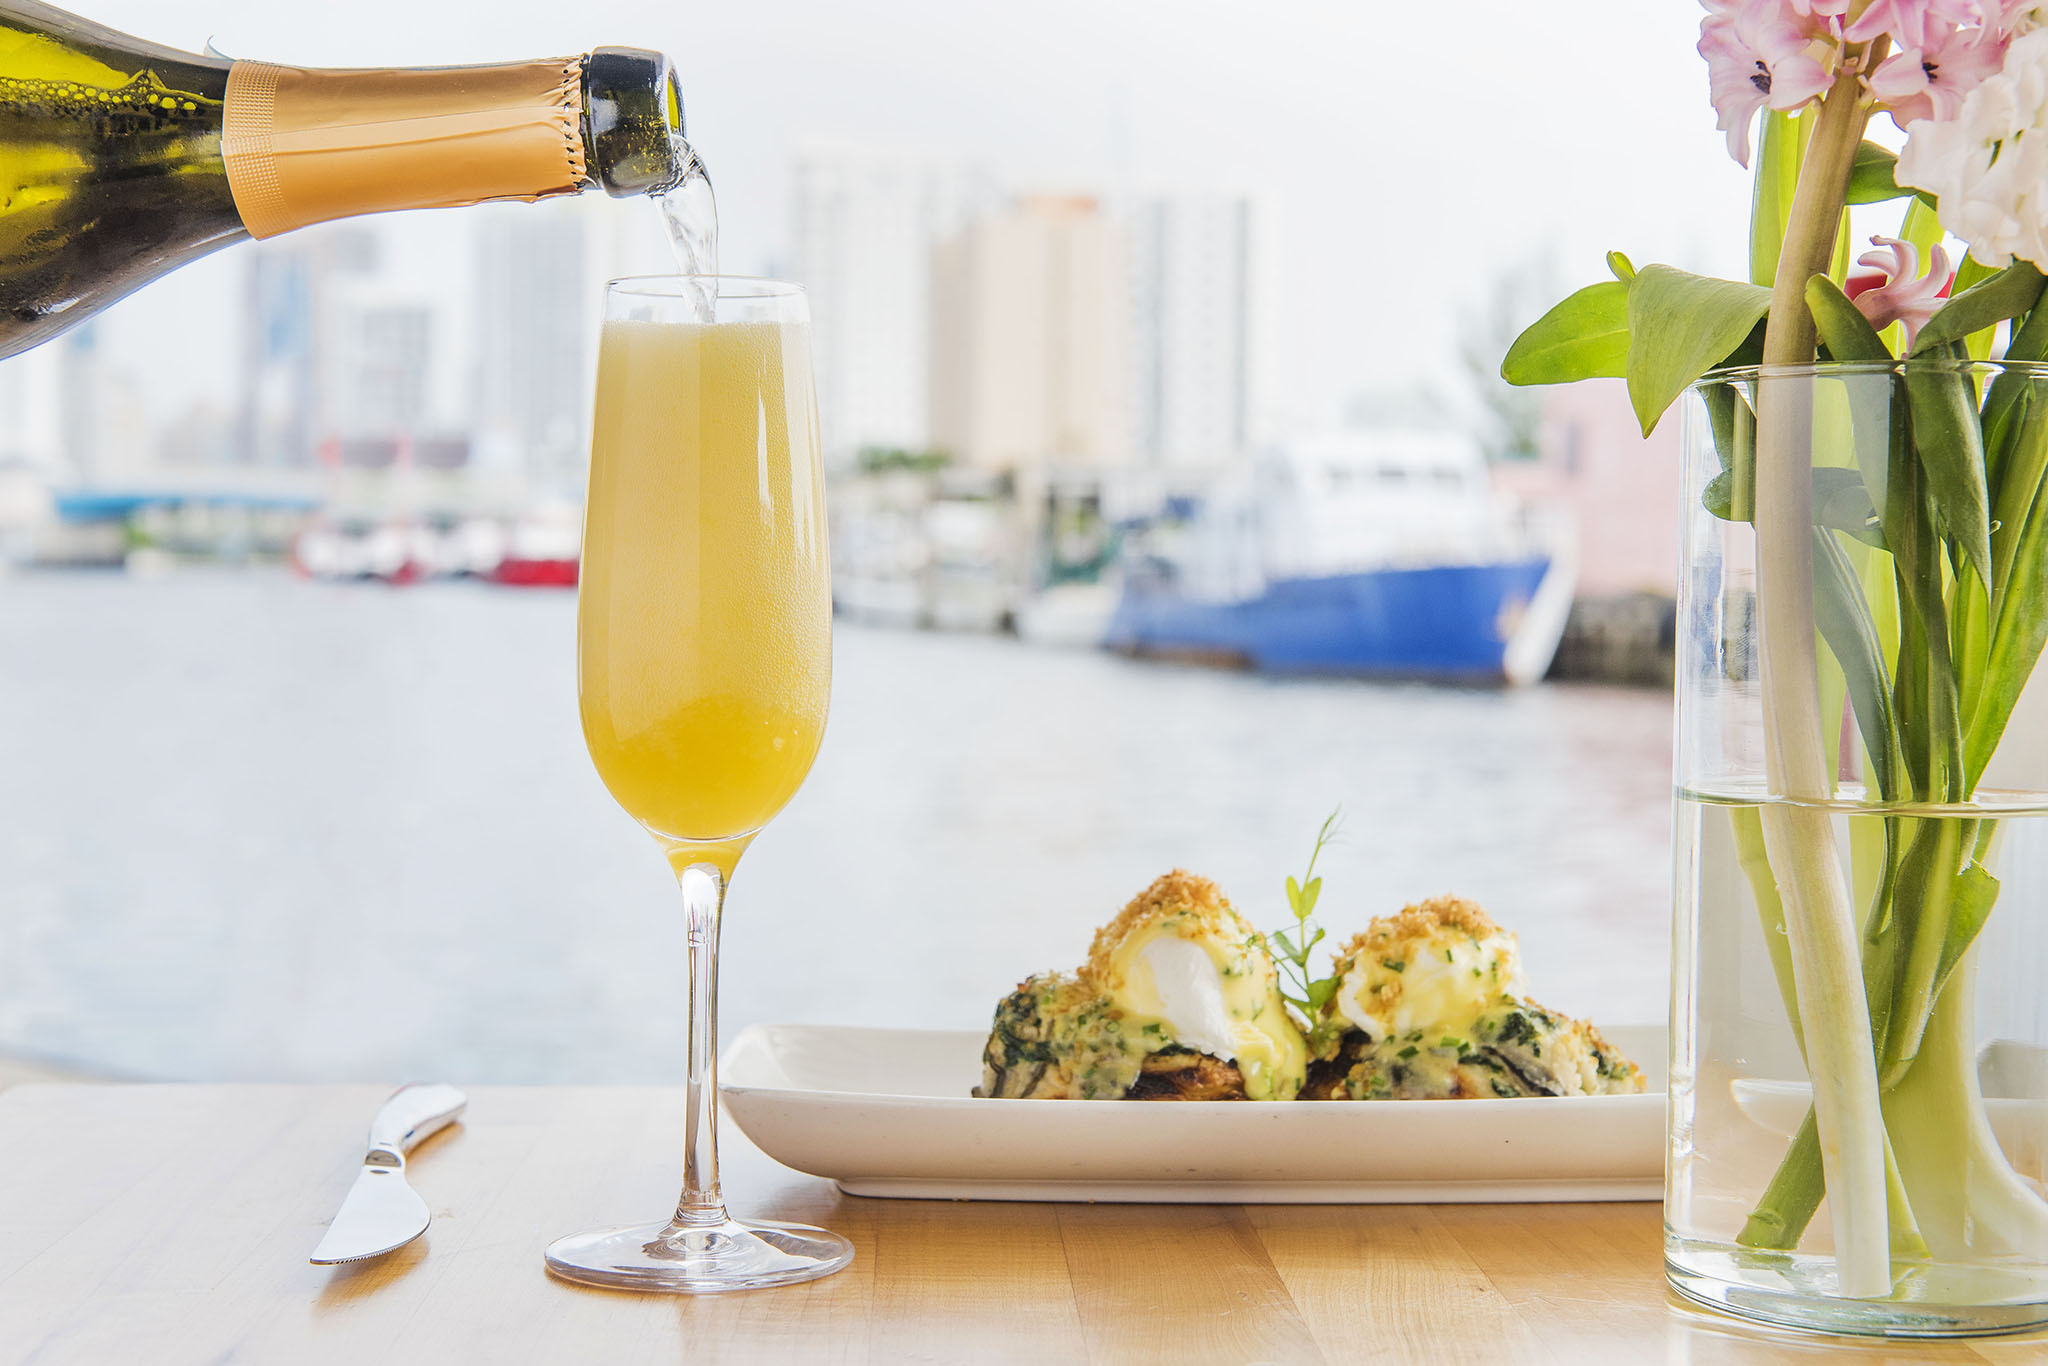 Where to find the best bottomless brunch in Miami